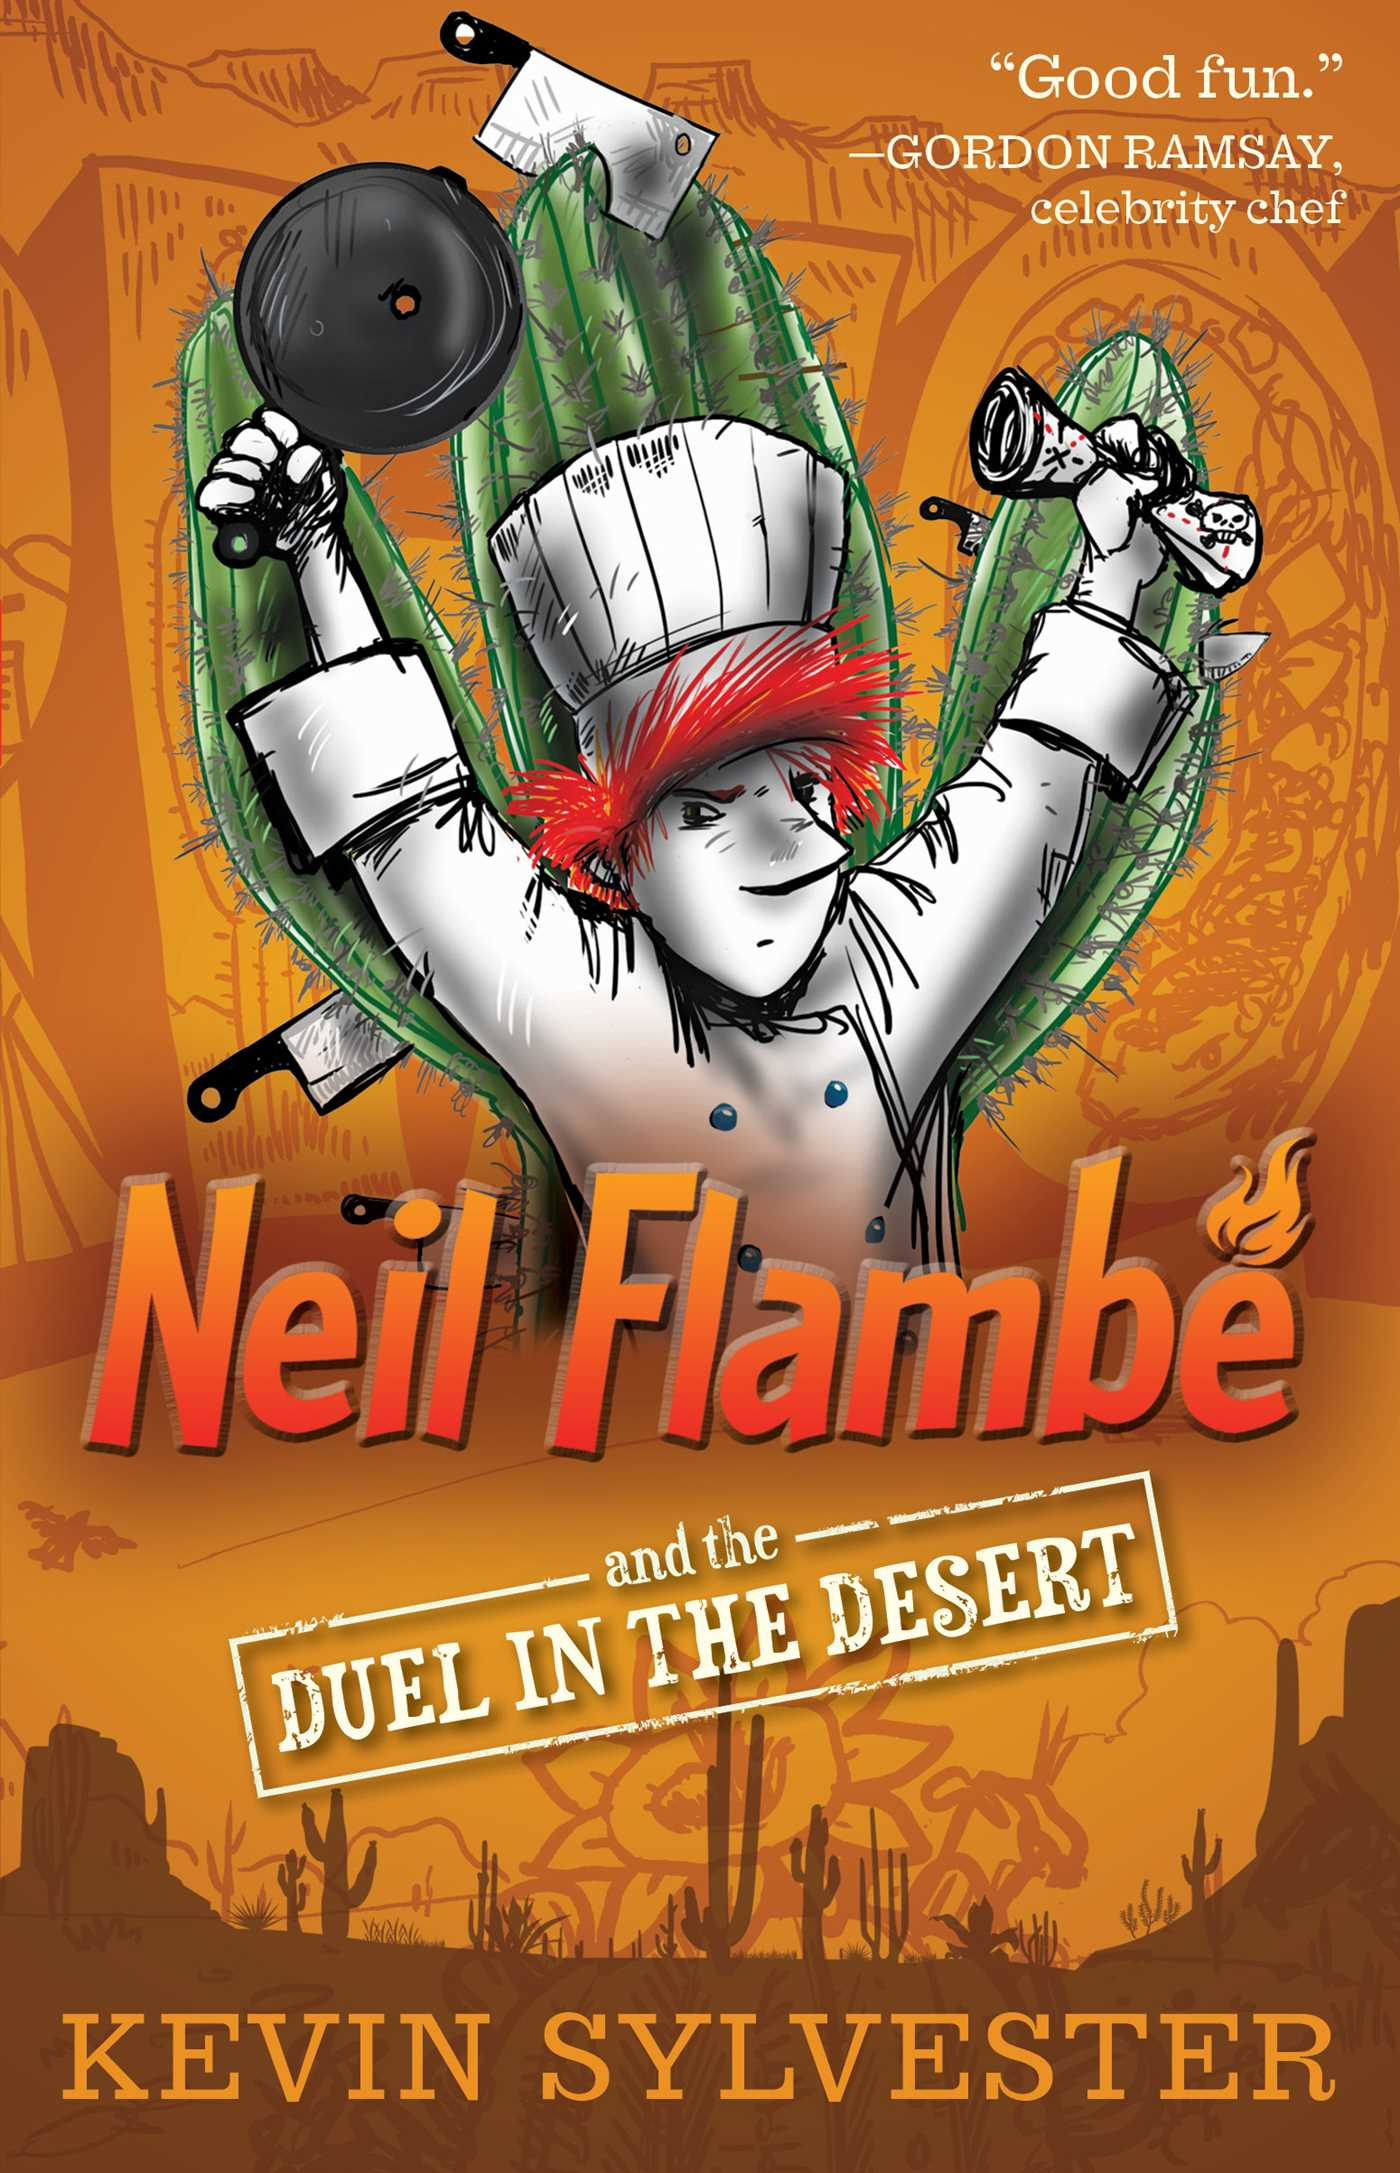 Neil flambe and the duel in the desert 9781481410427 hr